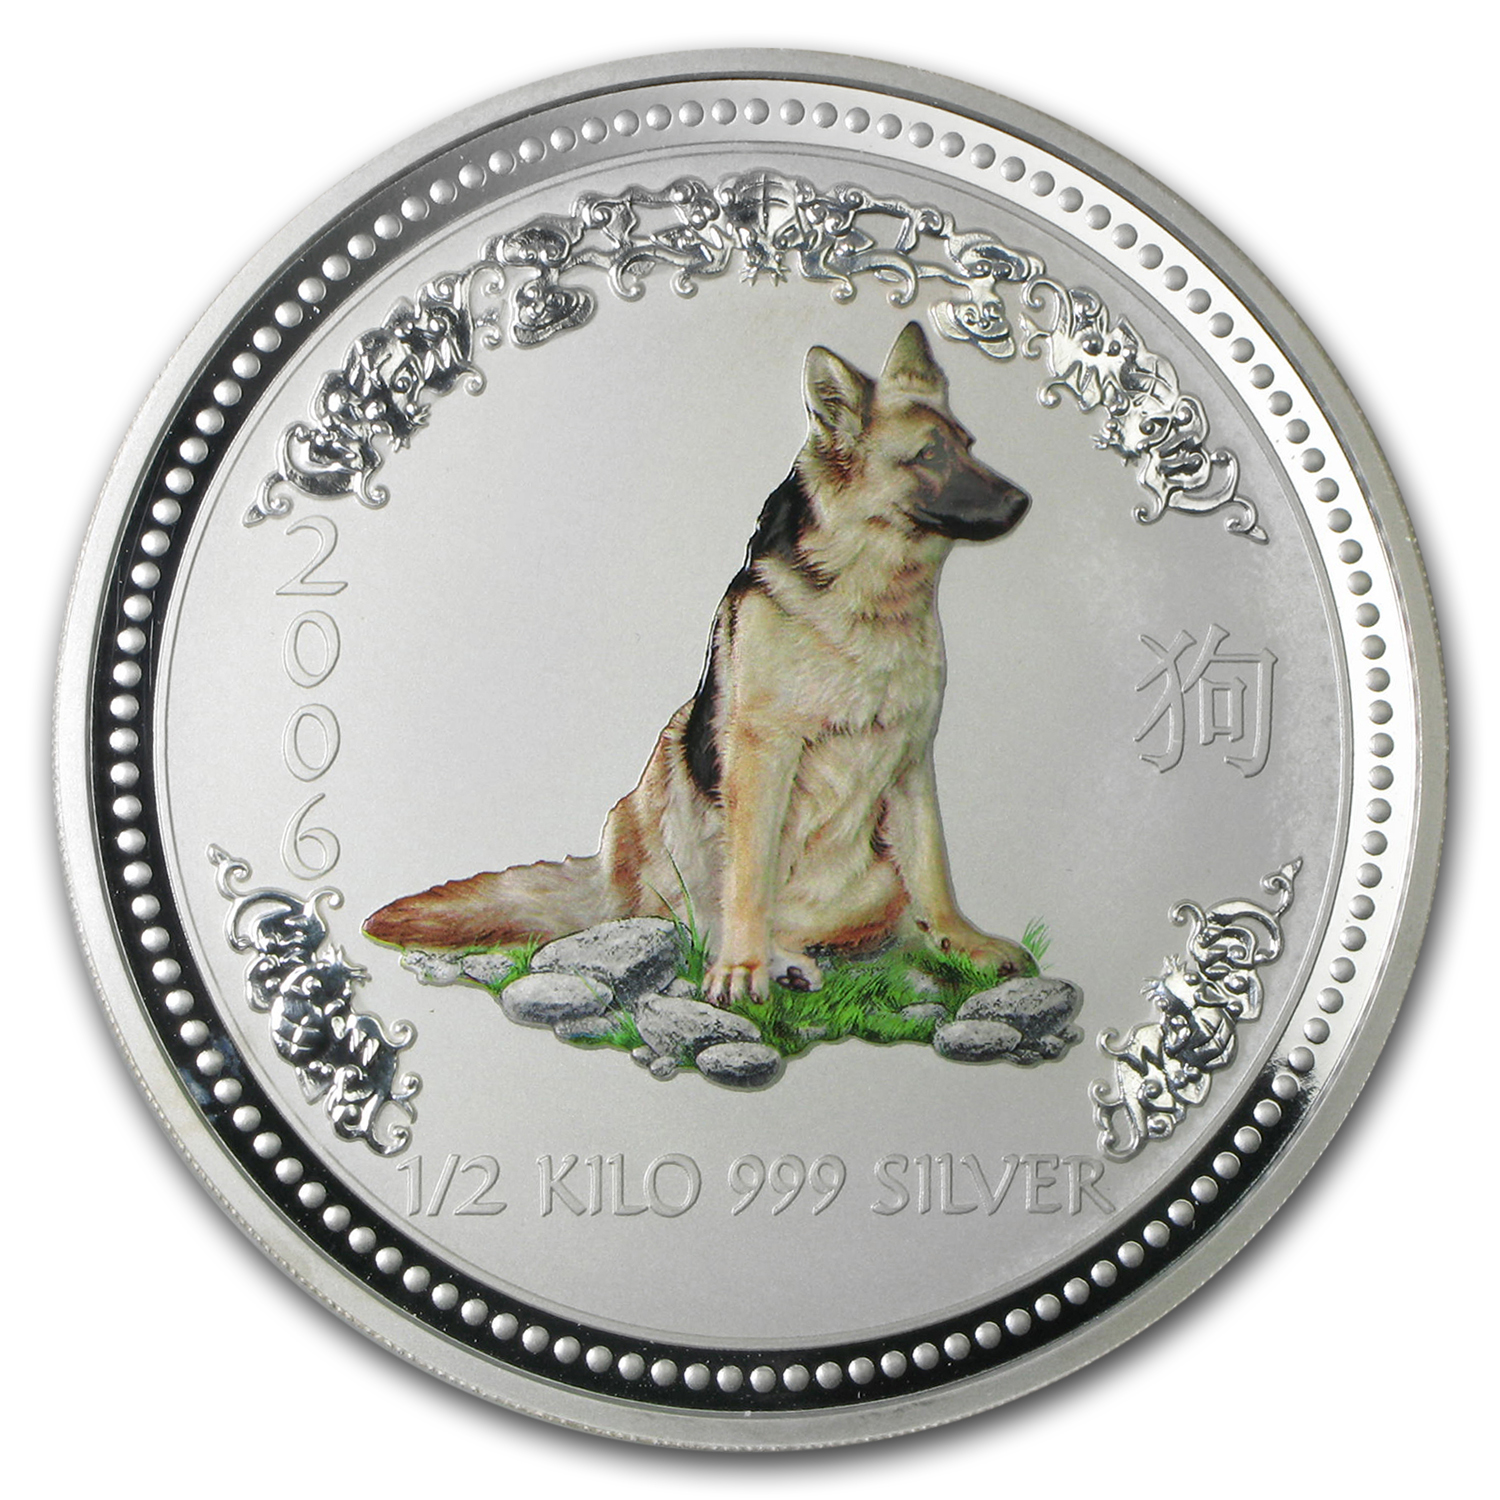 2006 Australia 1/2 kilo Silver Year of the Dog BU (Colorized)